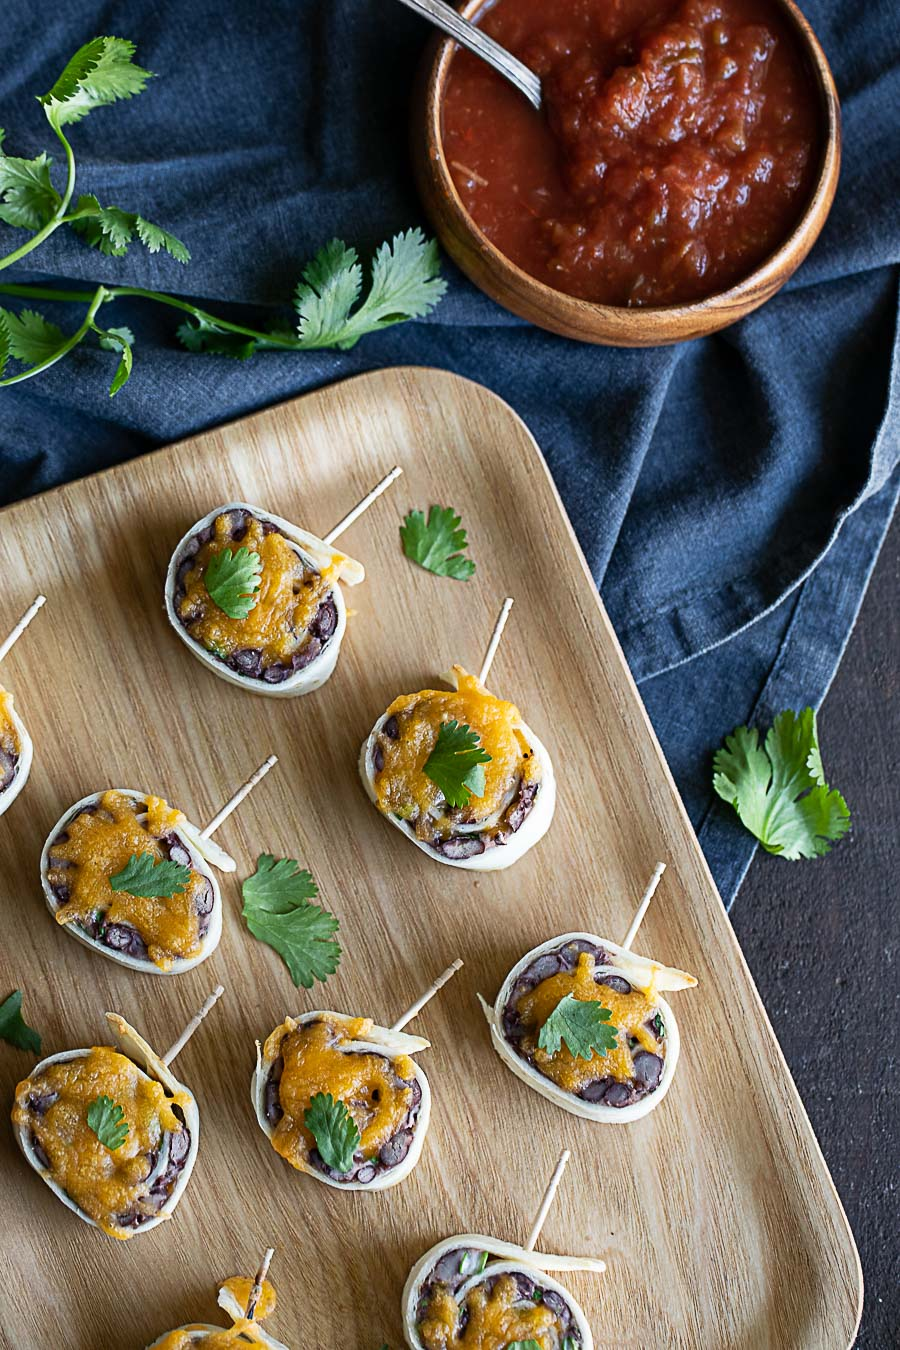 Mexican Pinwheels - Mexican Roll Ups with Black Beans - Vegetarian, Cold Mexican Appetizer